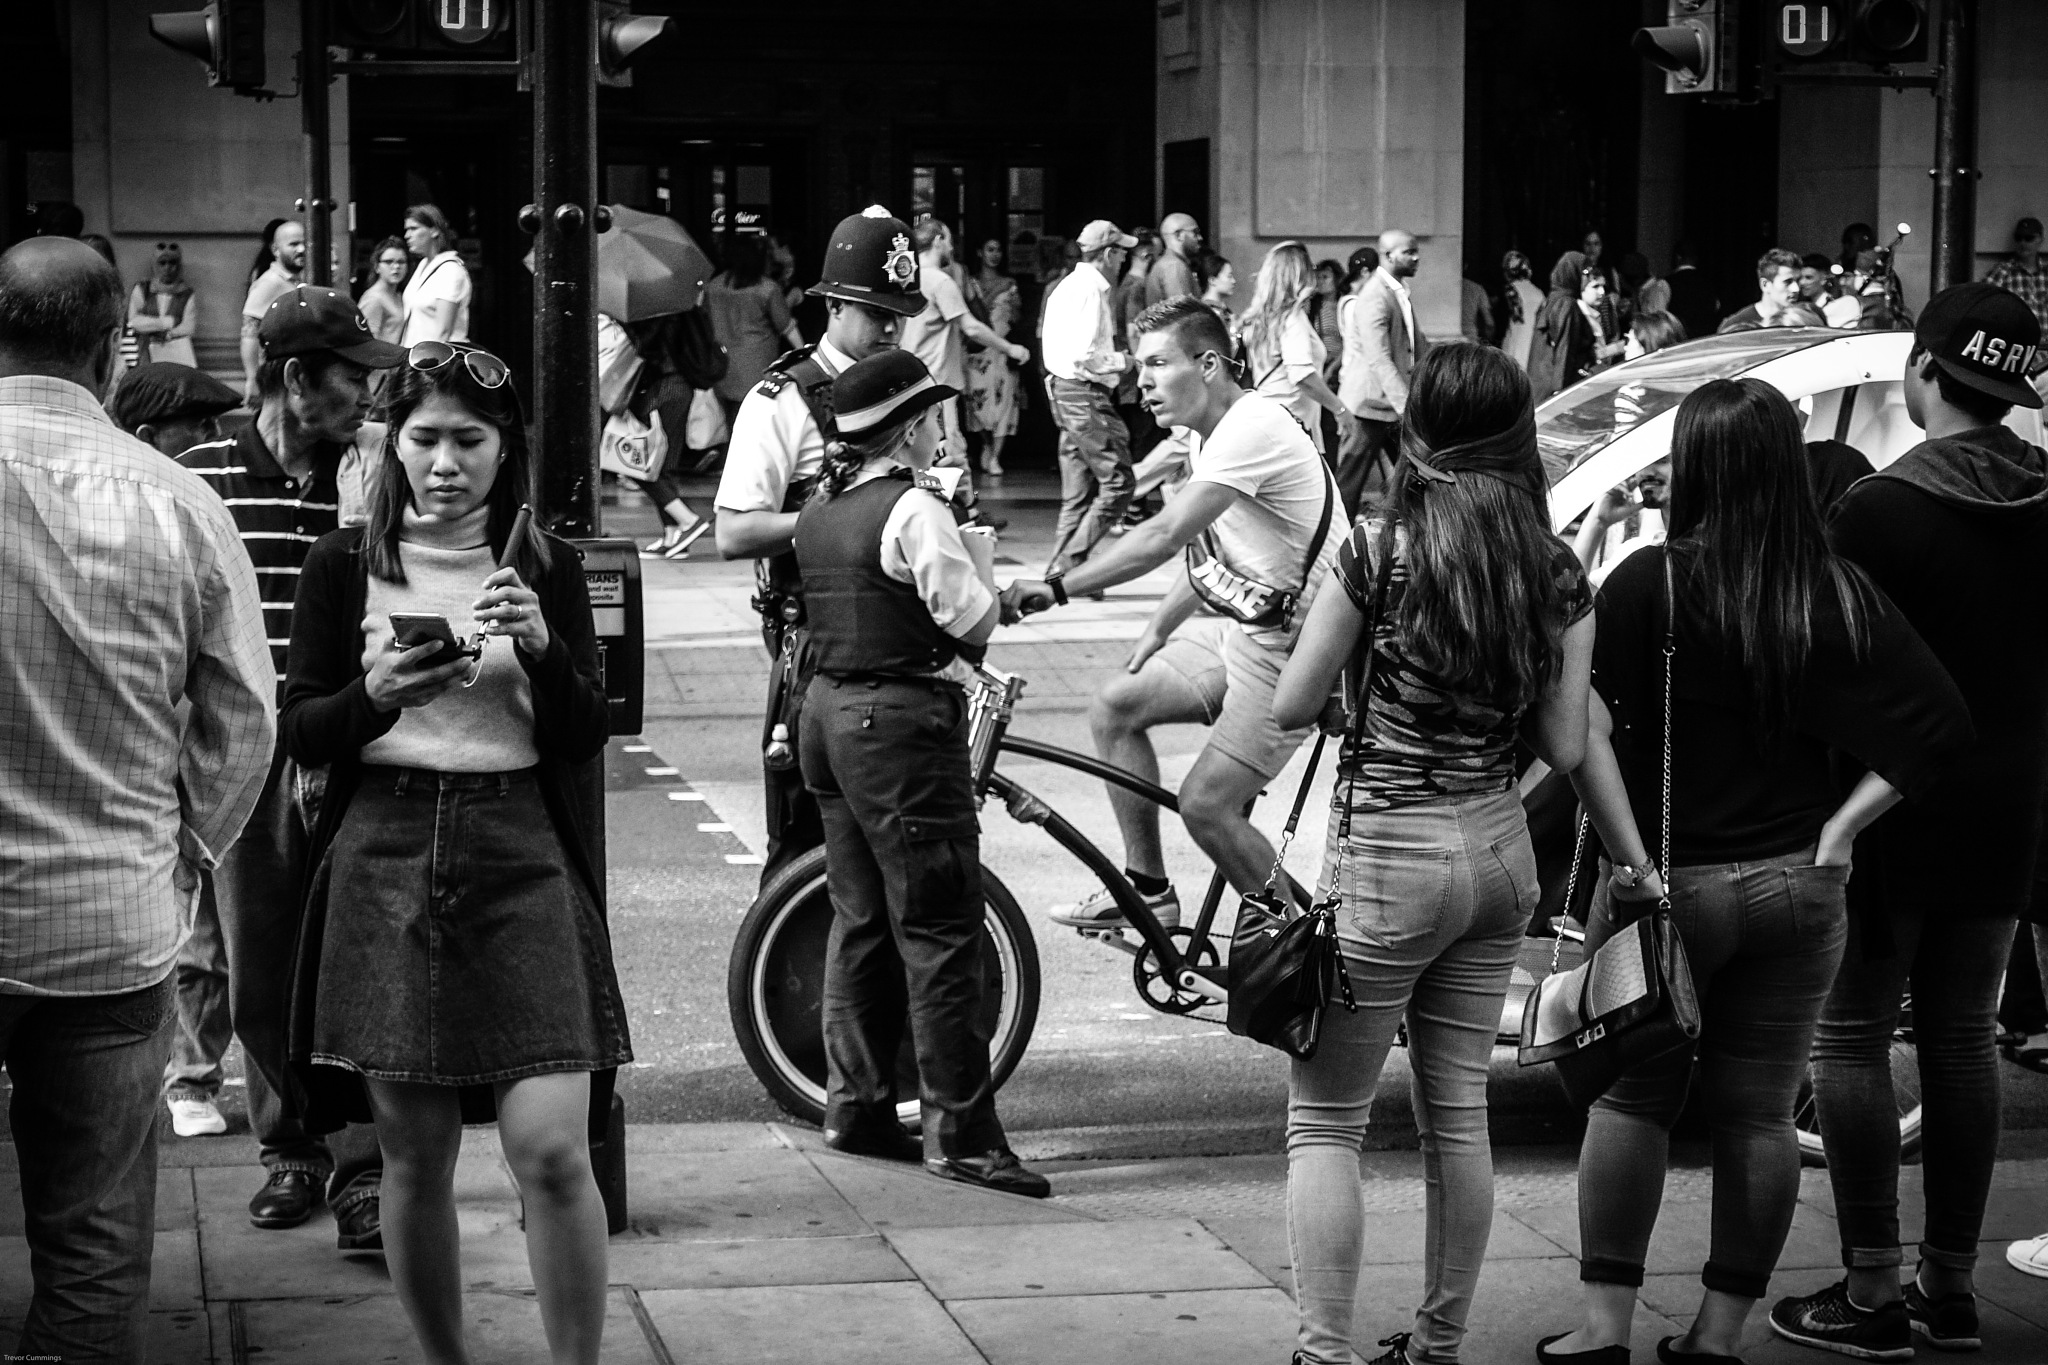 Oxford Street, Central London, UK by StreetCrusader